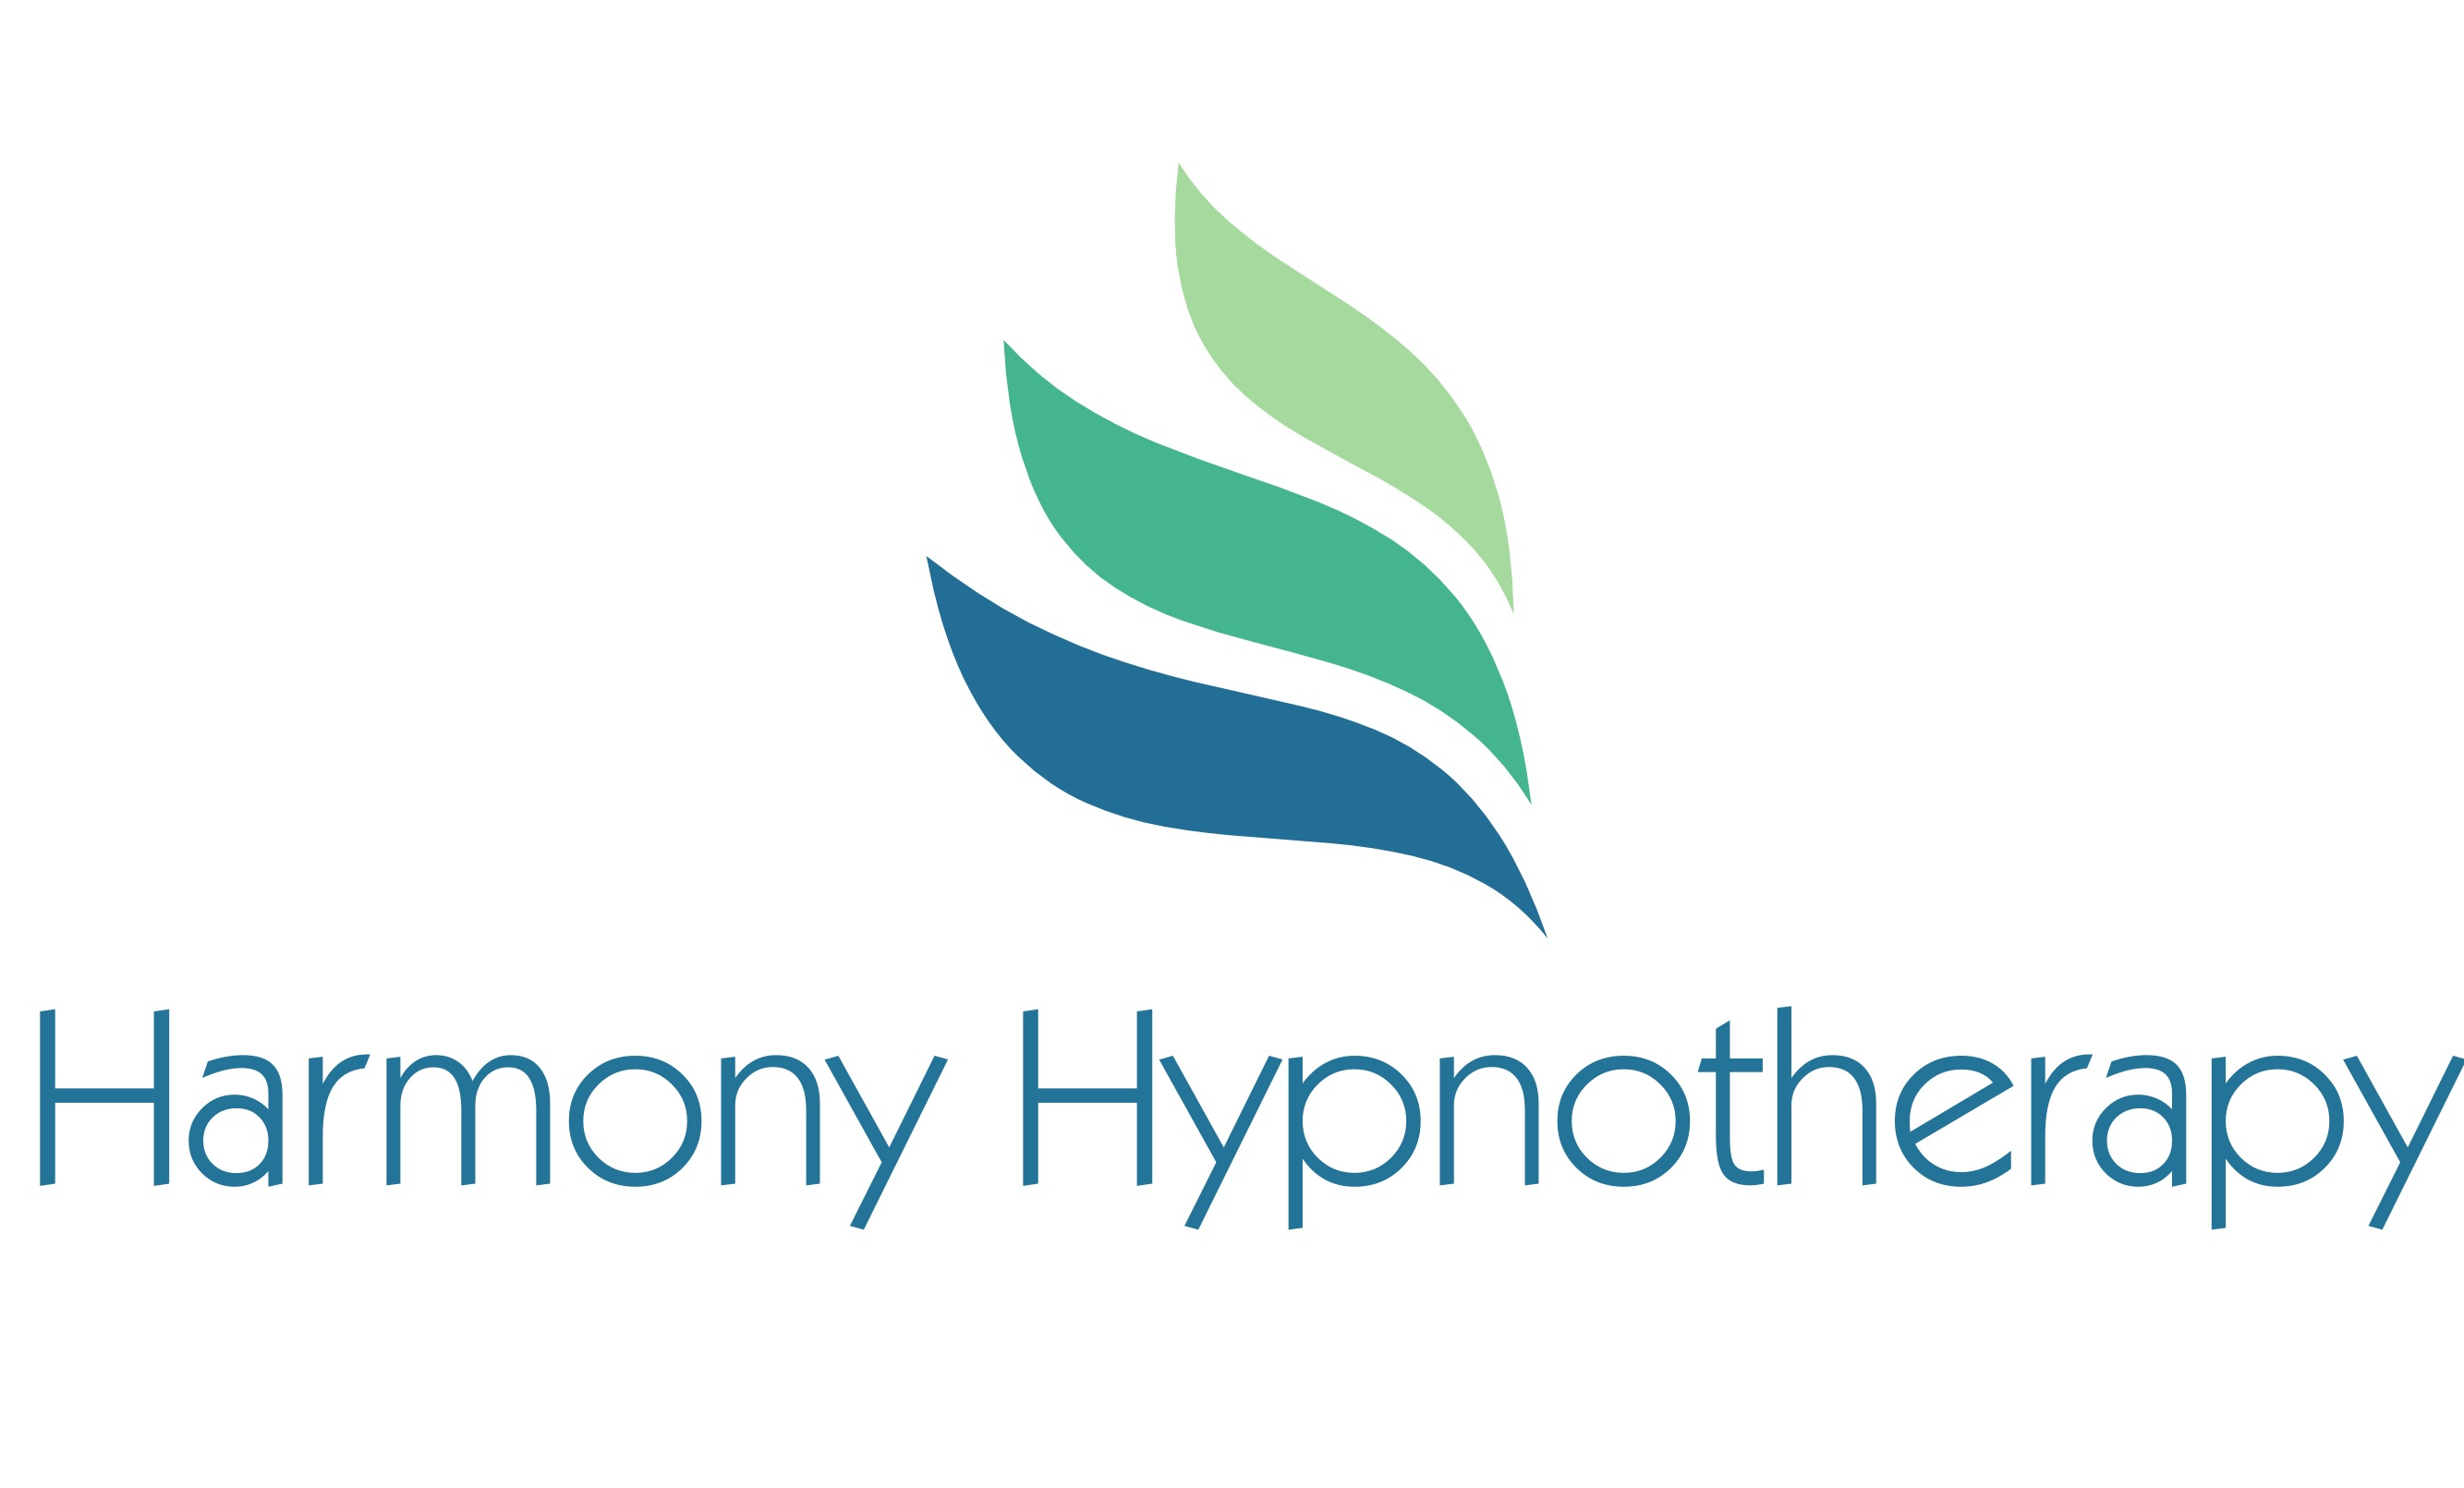 Enjoy a Relaxation or Hypnotherapy Treatment during your stay